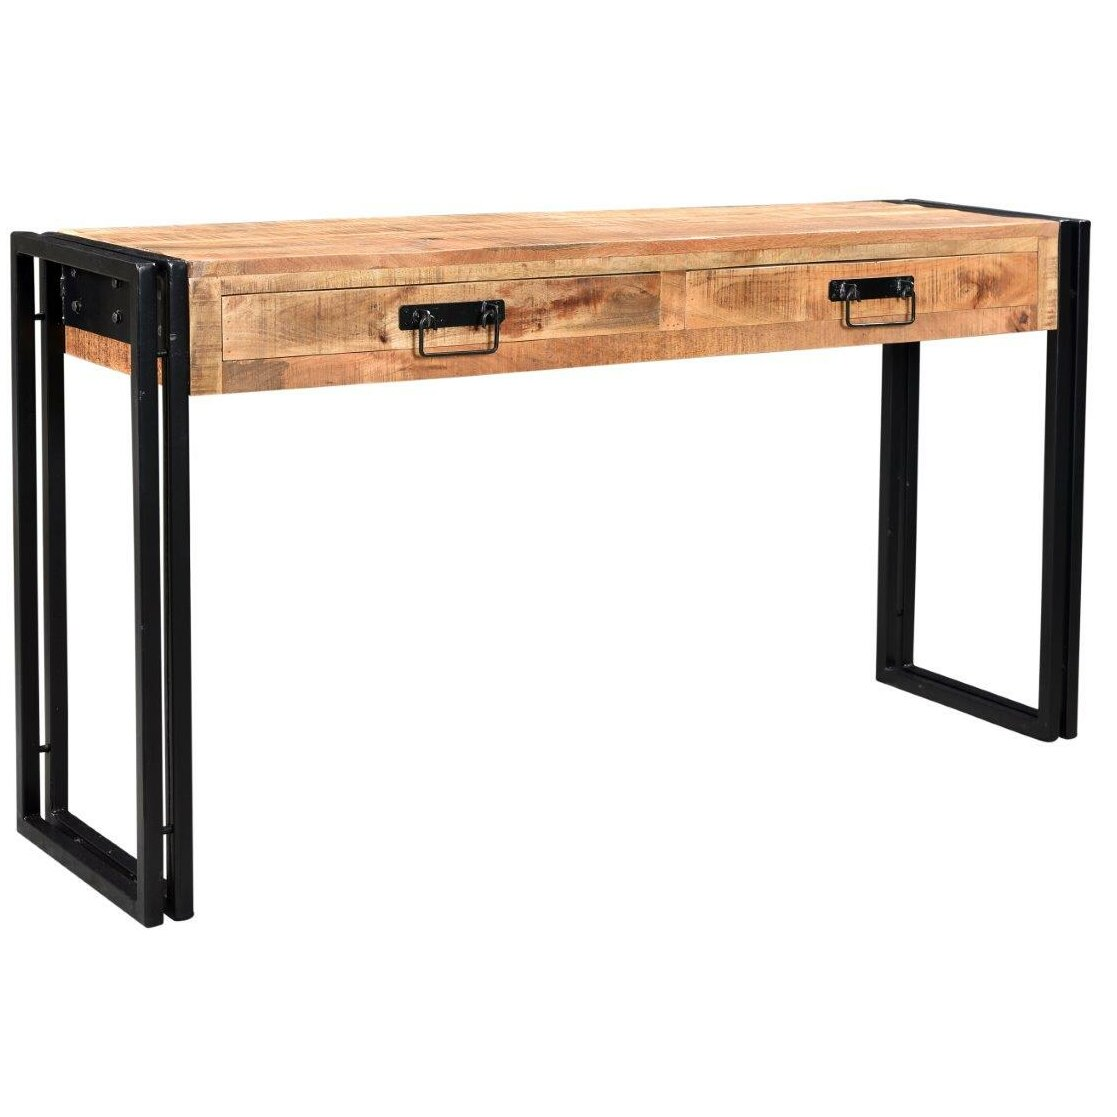 Timbergirl Industrial Console Table Wayfair